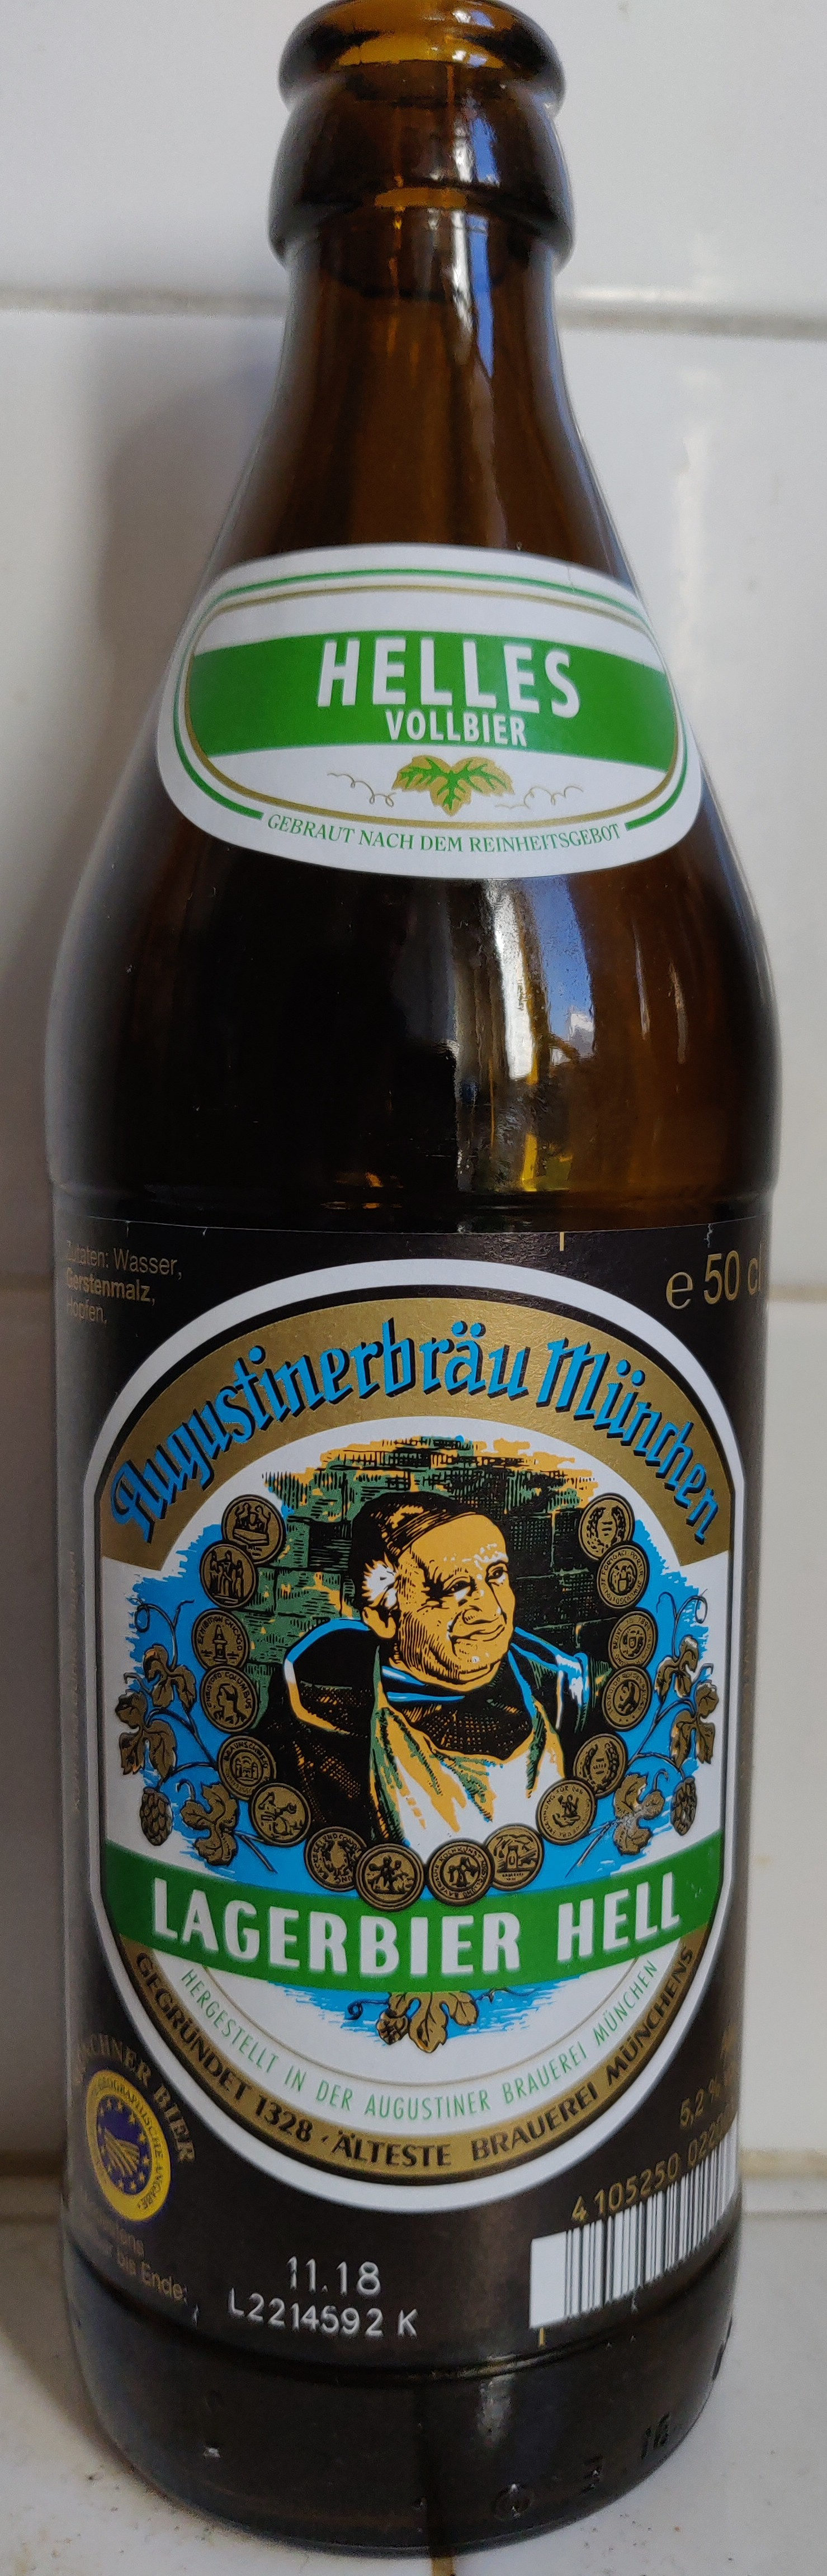 Lagerbier Hell - Product